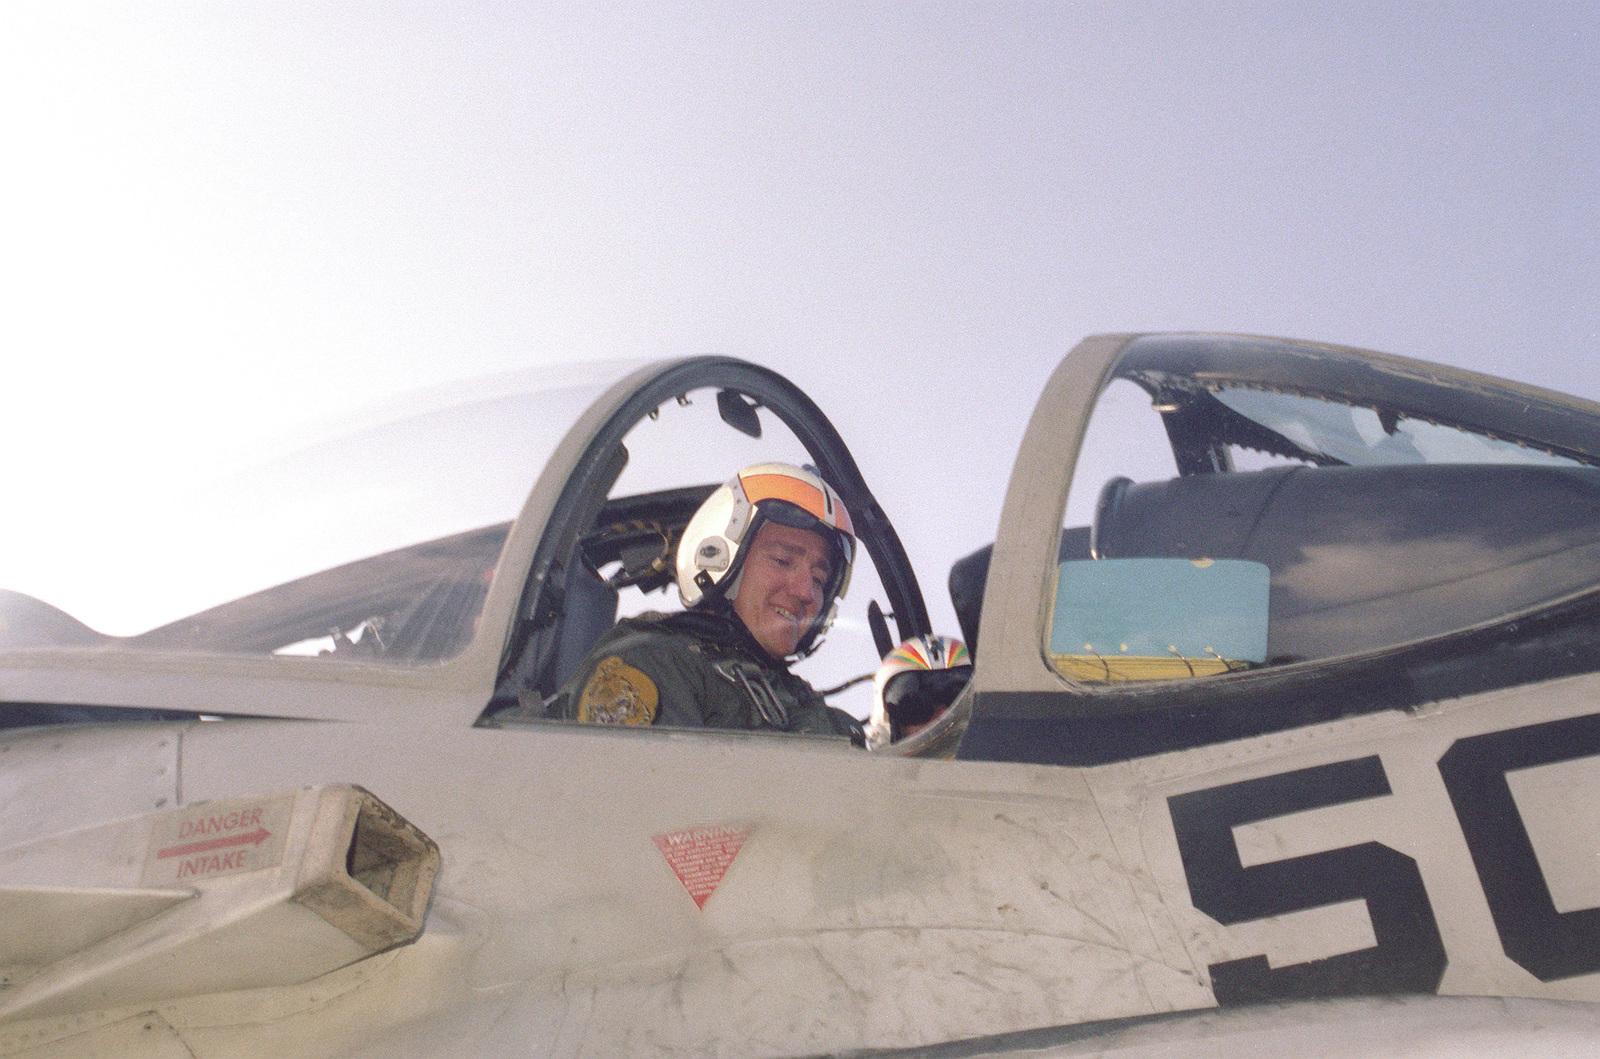 Secretary of the Navy John F. Lehman Jr. straps himself into an Attack Squadron 65 (VA-65) A-6E intruder aircraft being readied for launch on the deckof the nuclear-powered aircraft carrier USS DWIGHT D. EISENHOWER (CVN-69)